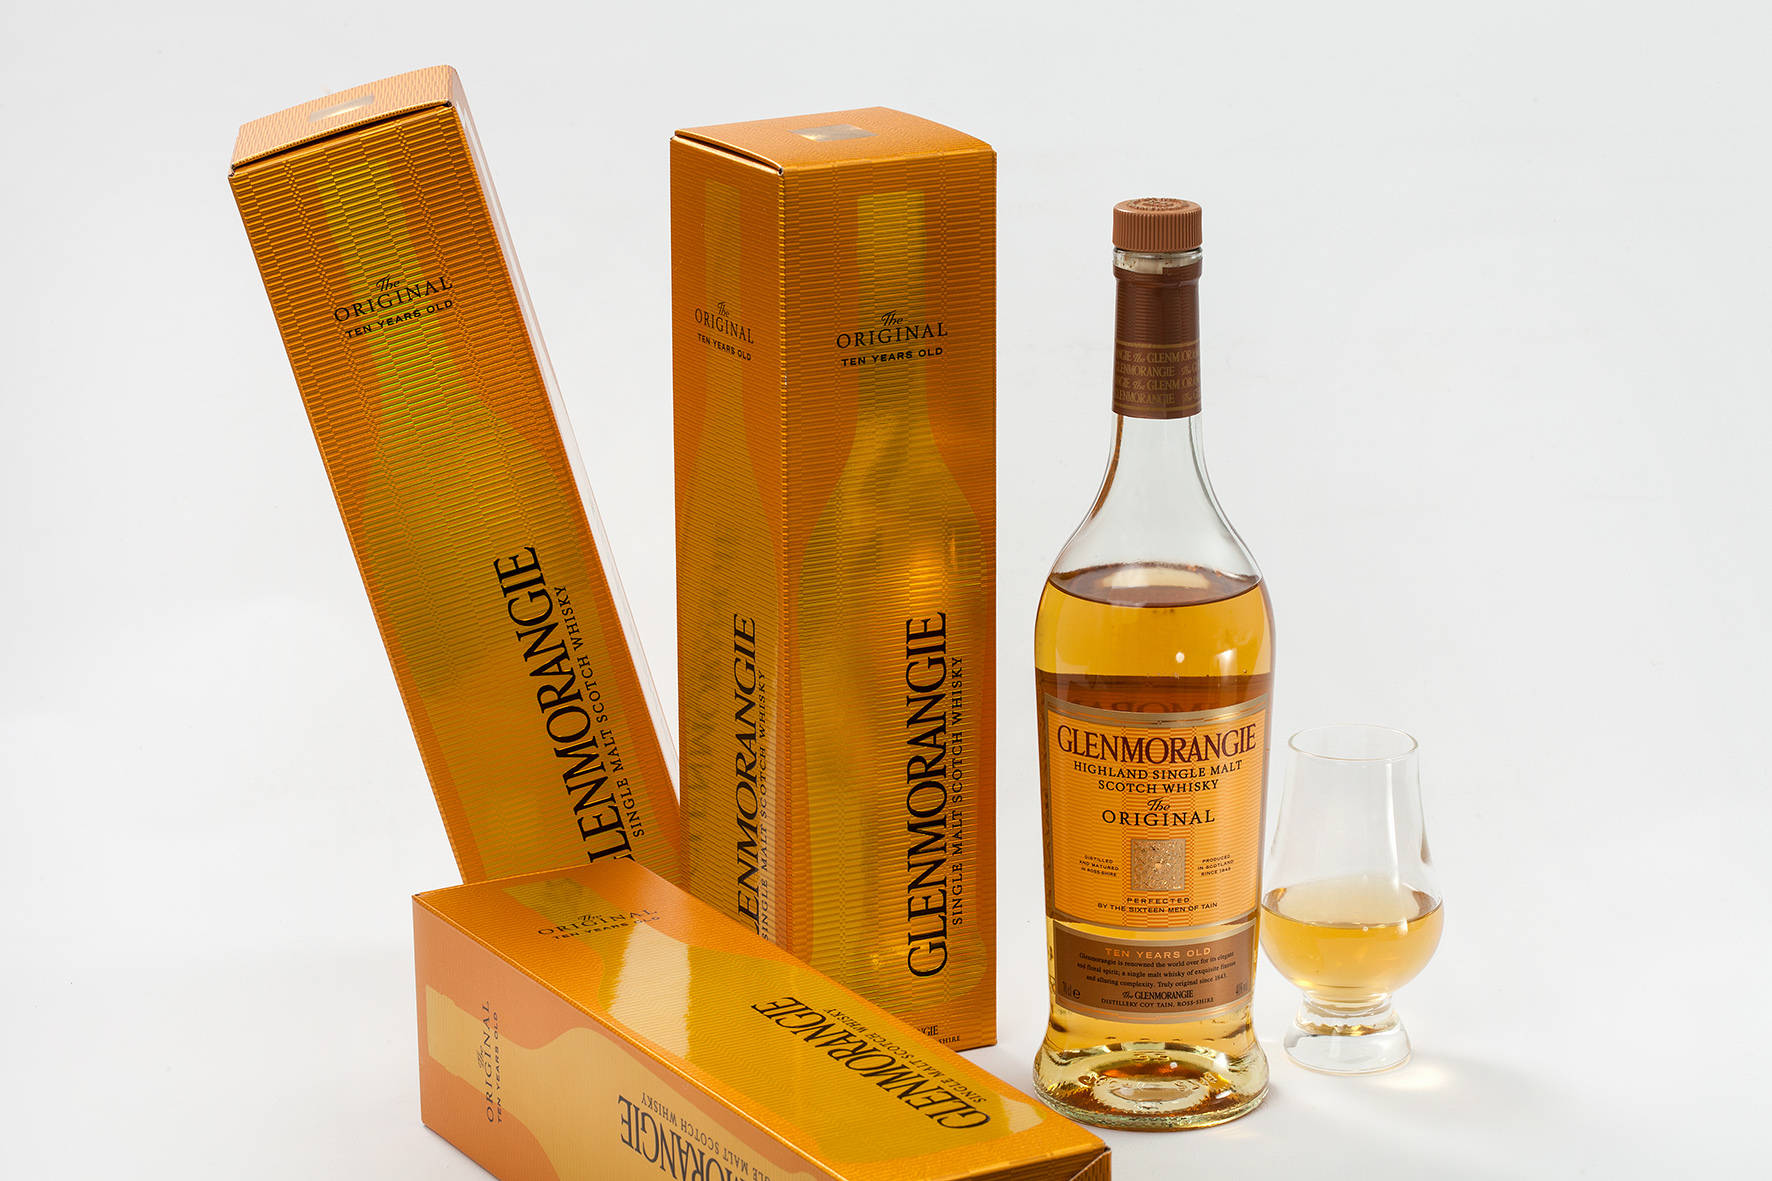 Glenmorangie Festive Year-End-Carton